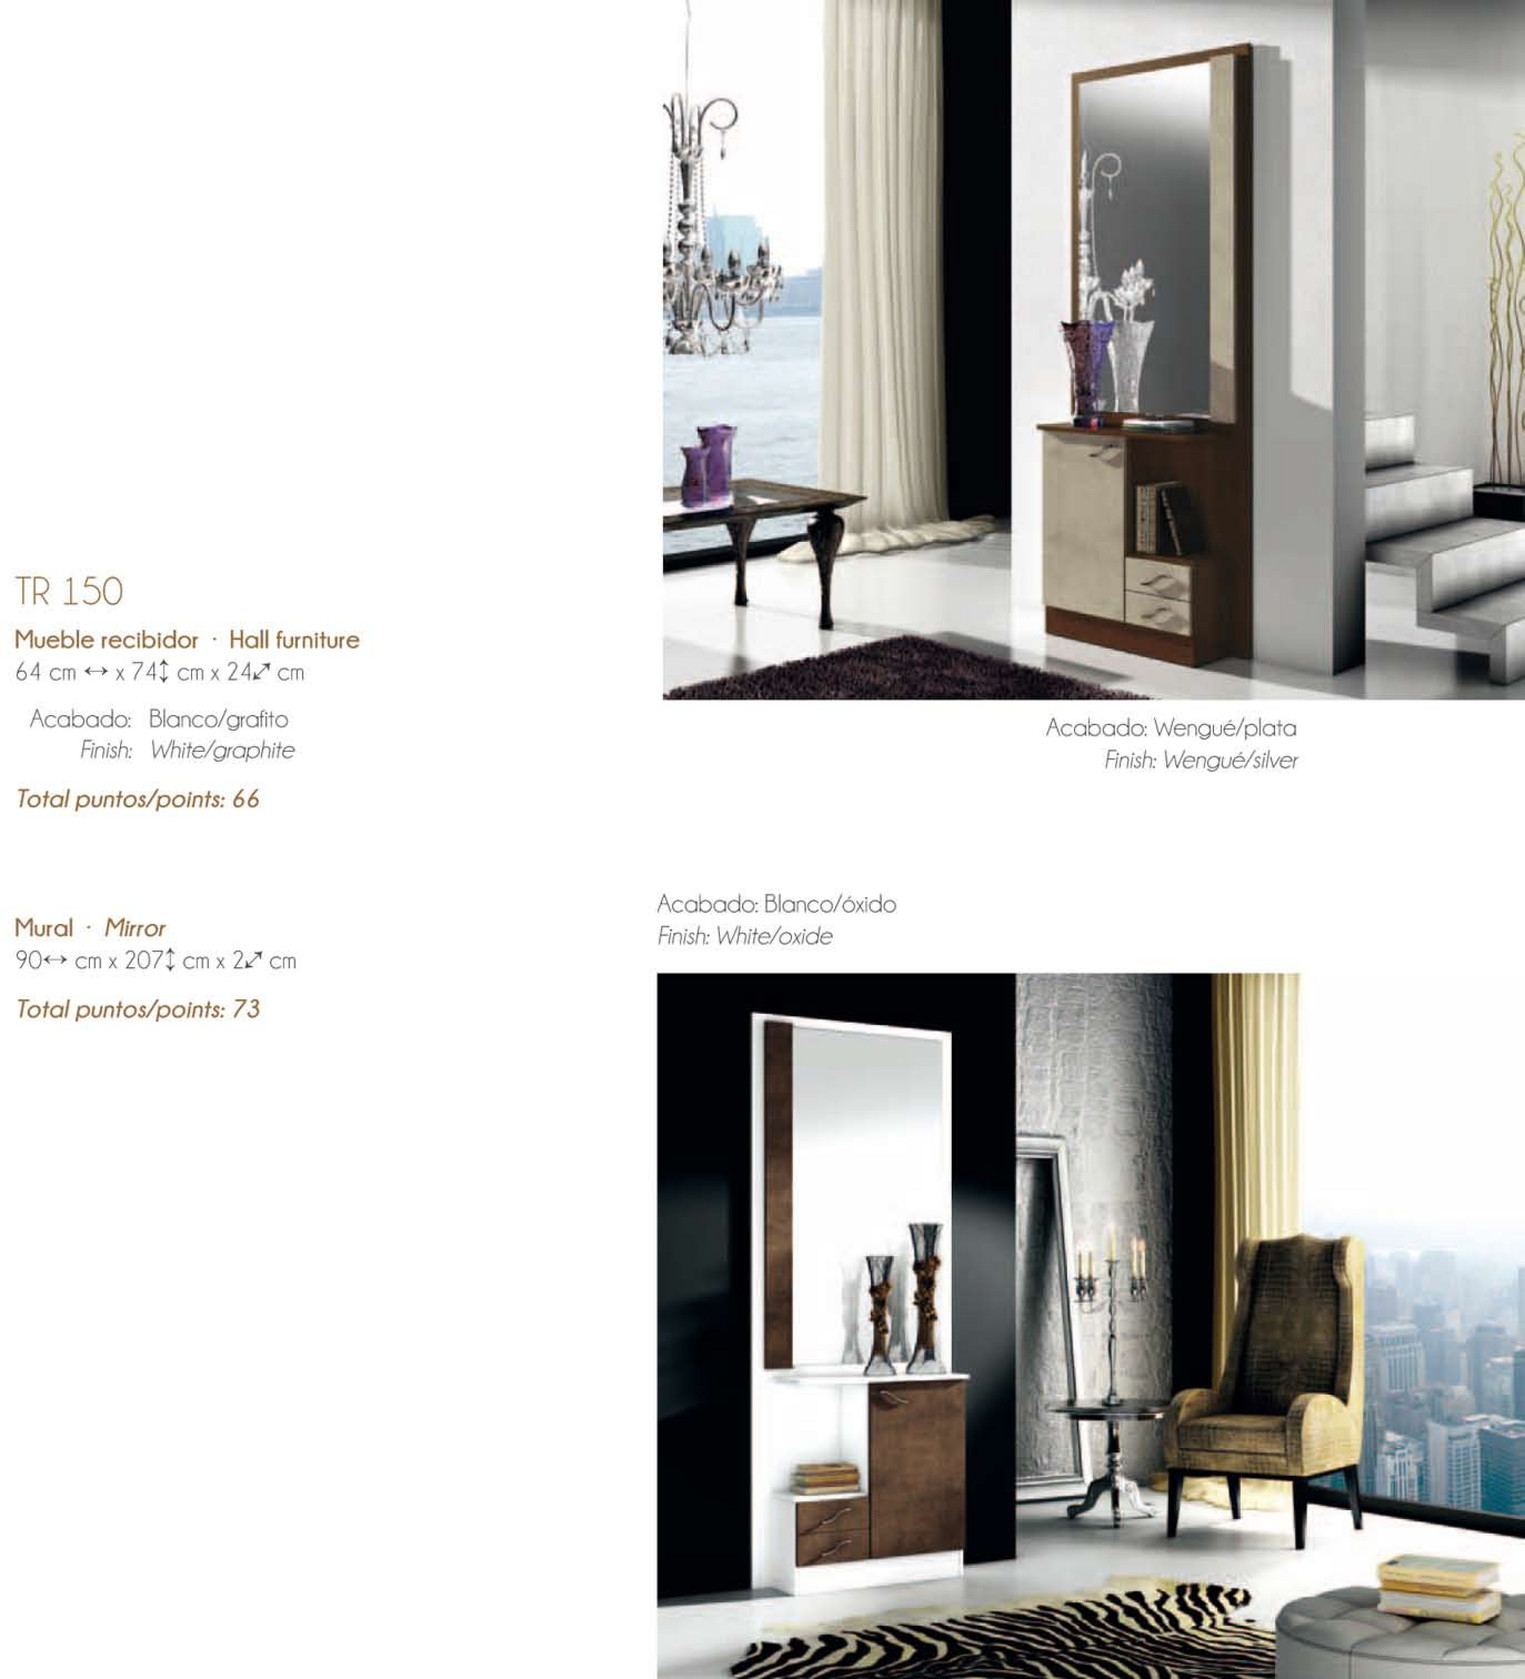 My publications muebles san francisco madrid muebles - Muebles san francisco ...